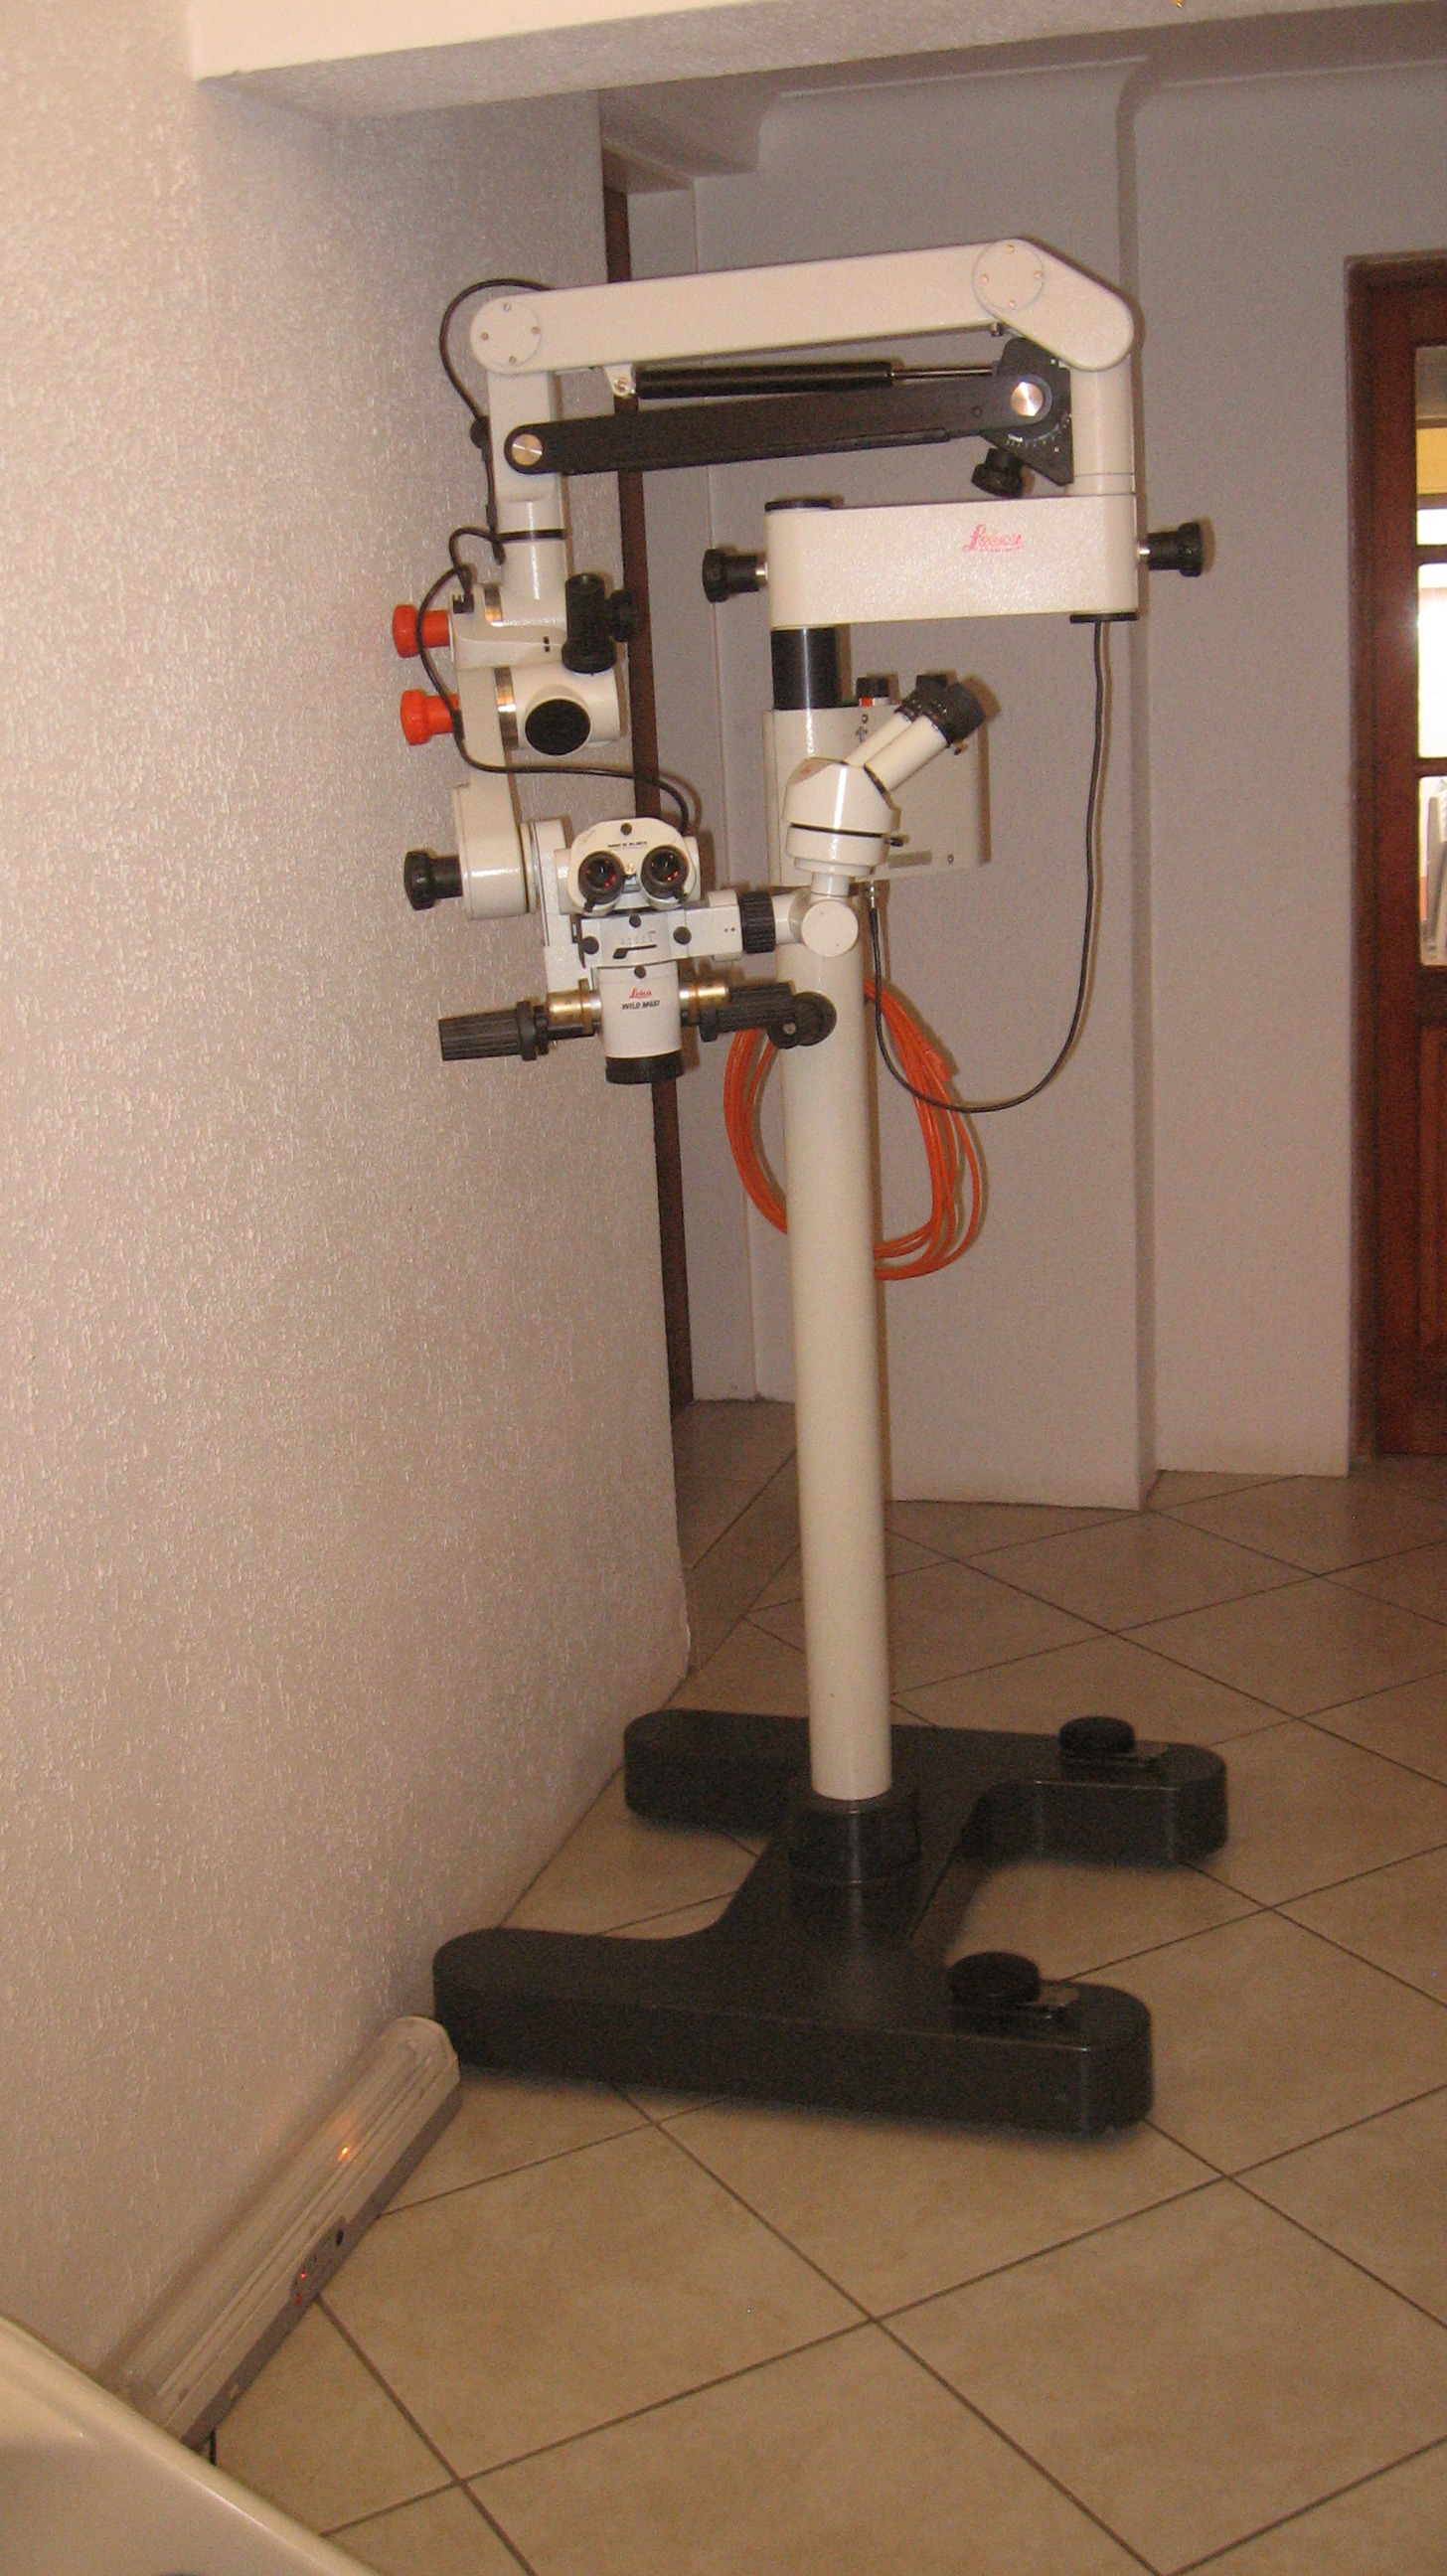 Leica M651 Surgical Microscope.